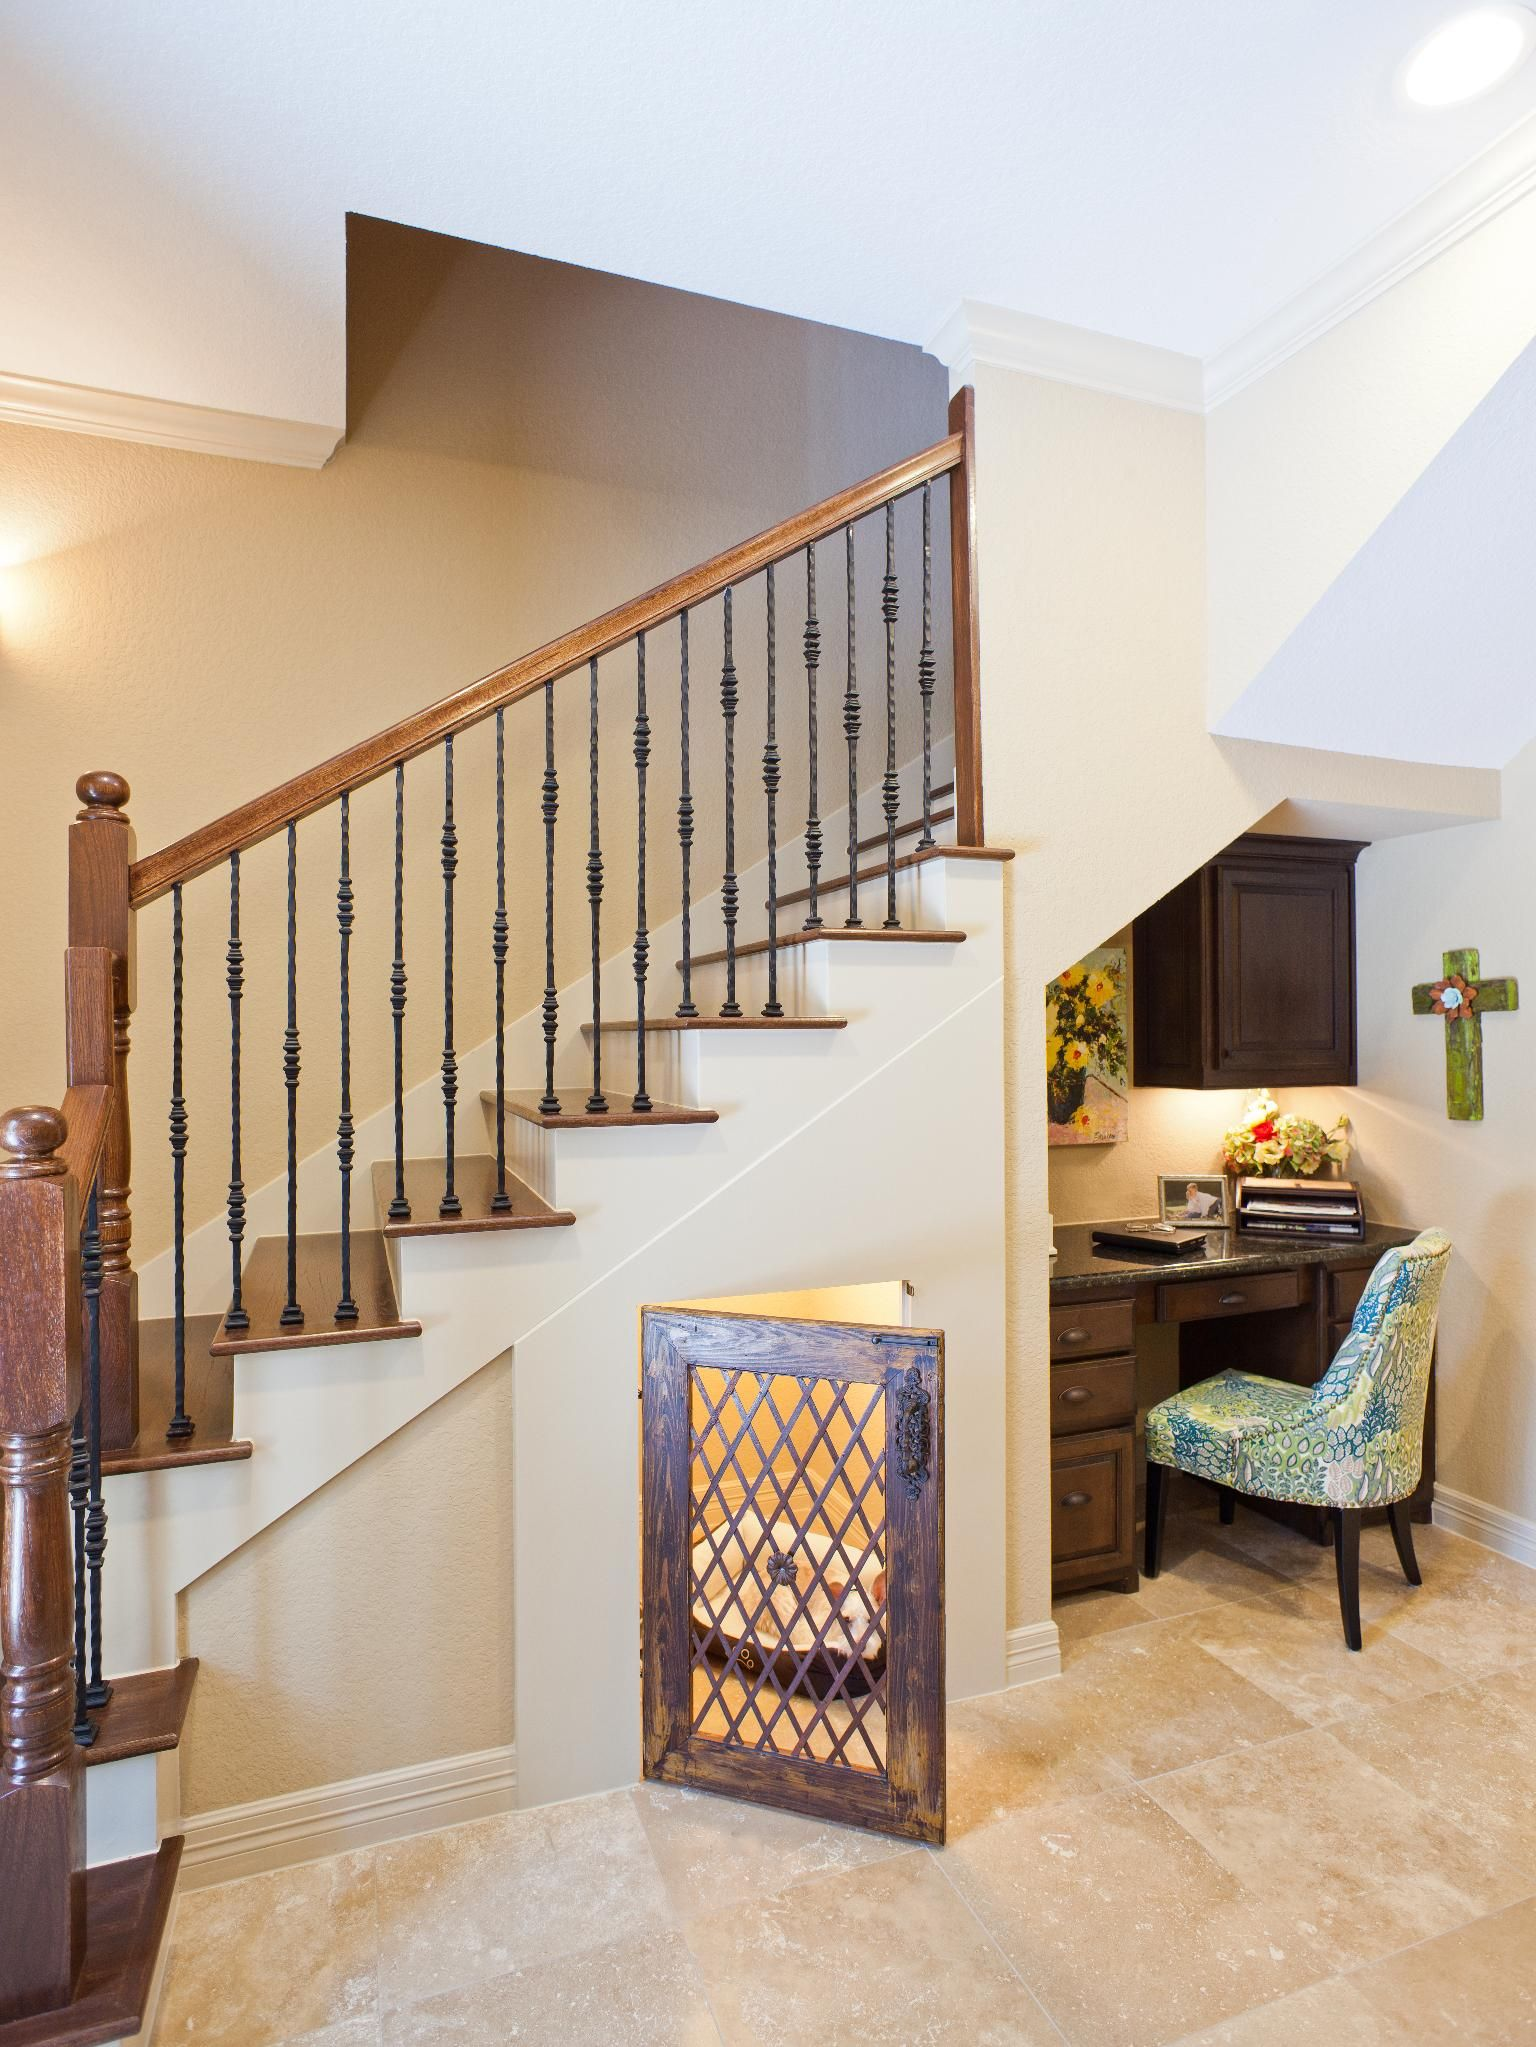 12 Creative Ways To Use The Space Under Your Stairs Under Stairs Dog House Home Cozy House